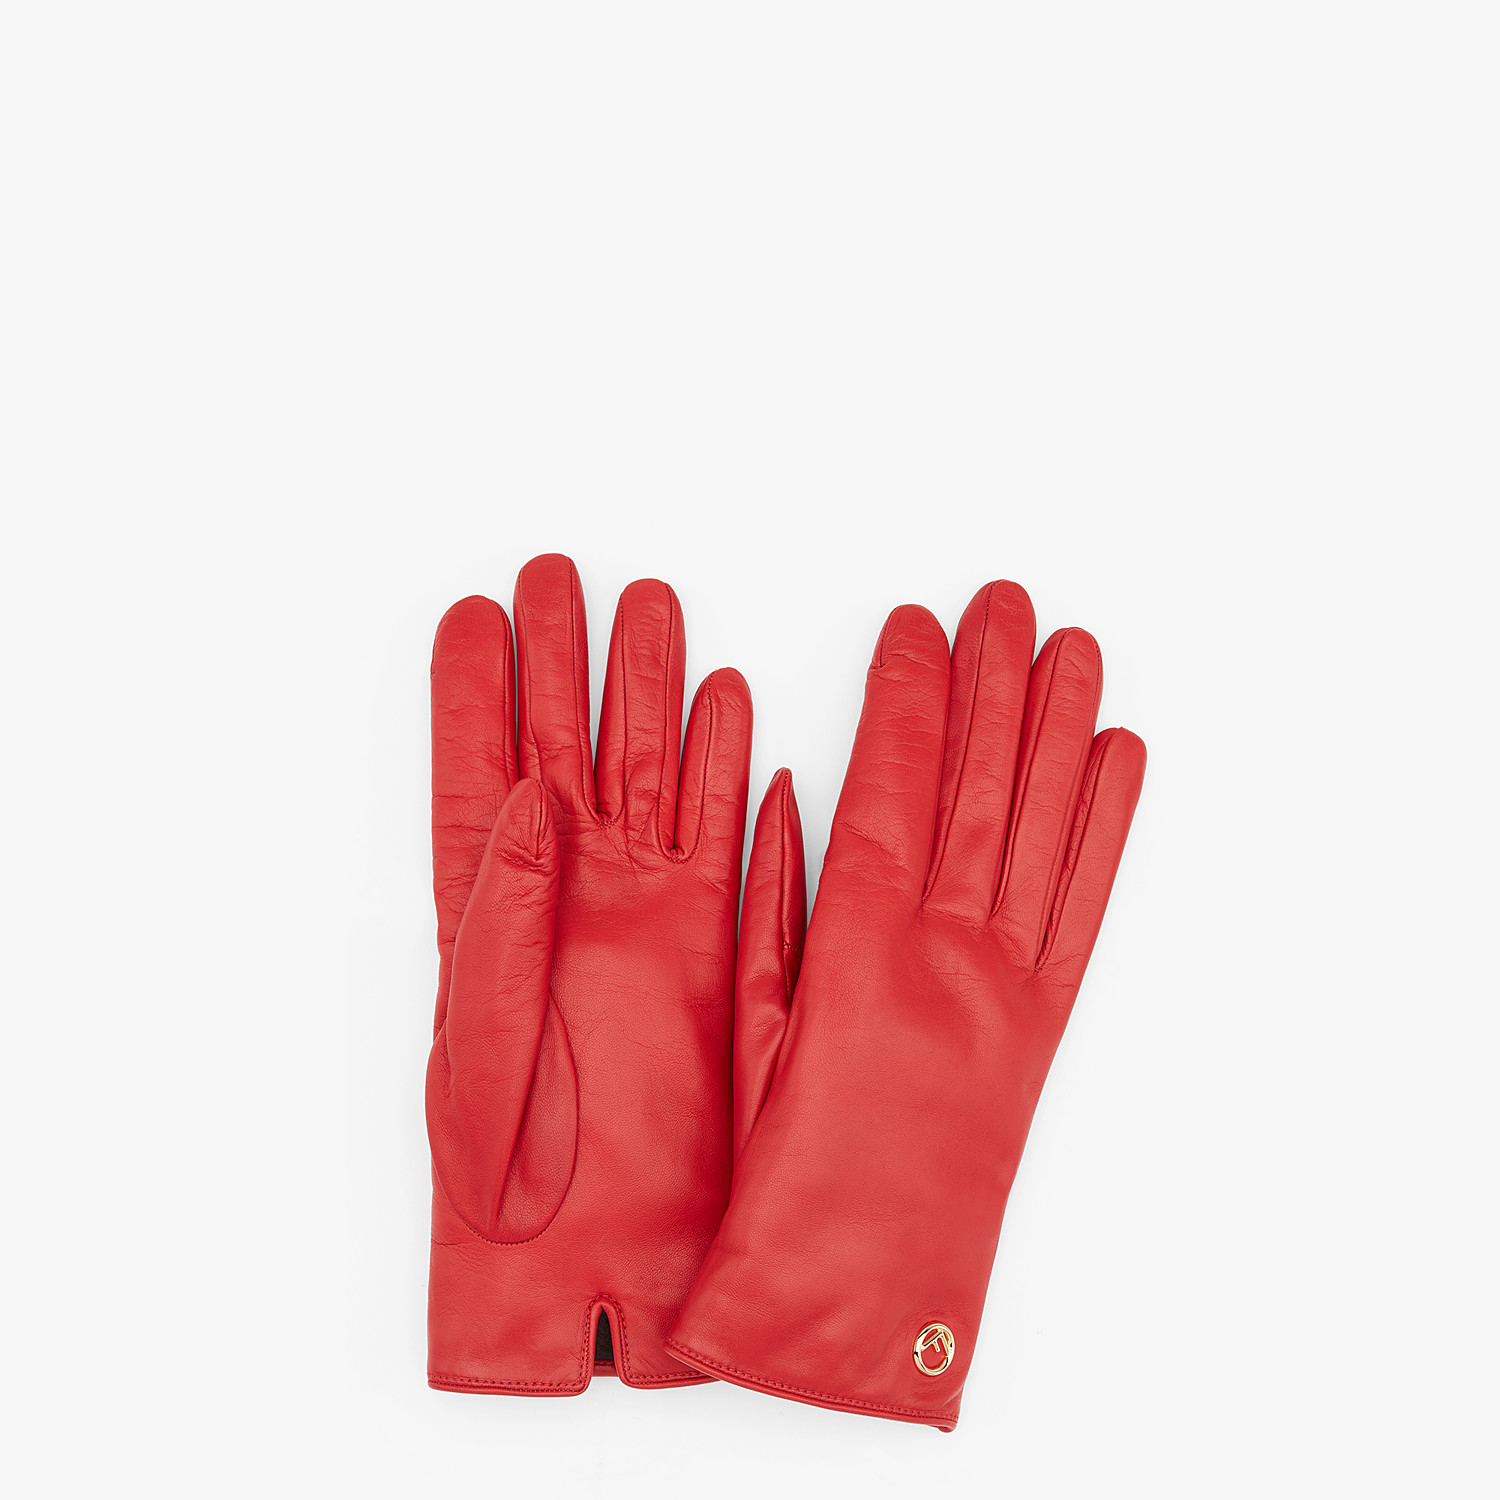 FENDI GLOVES - Red nappa leather gloves - view 1 detail